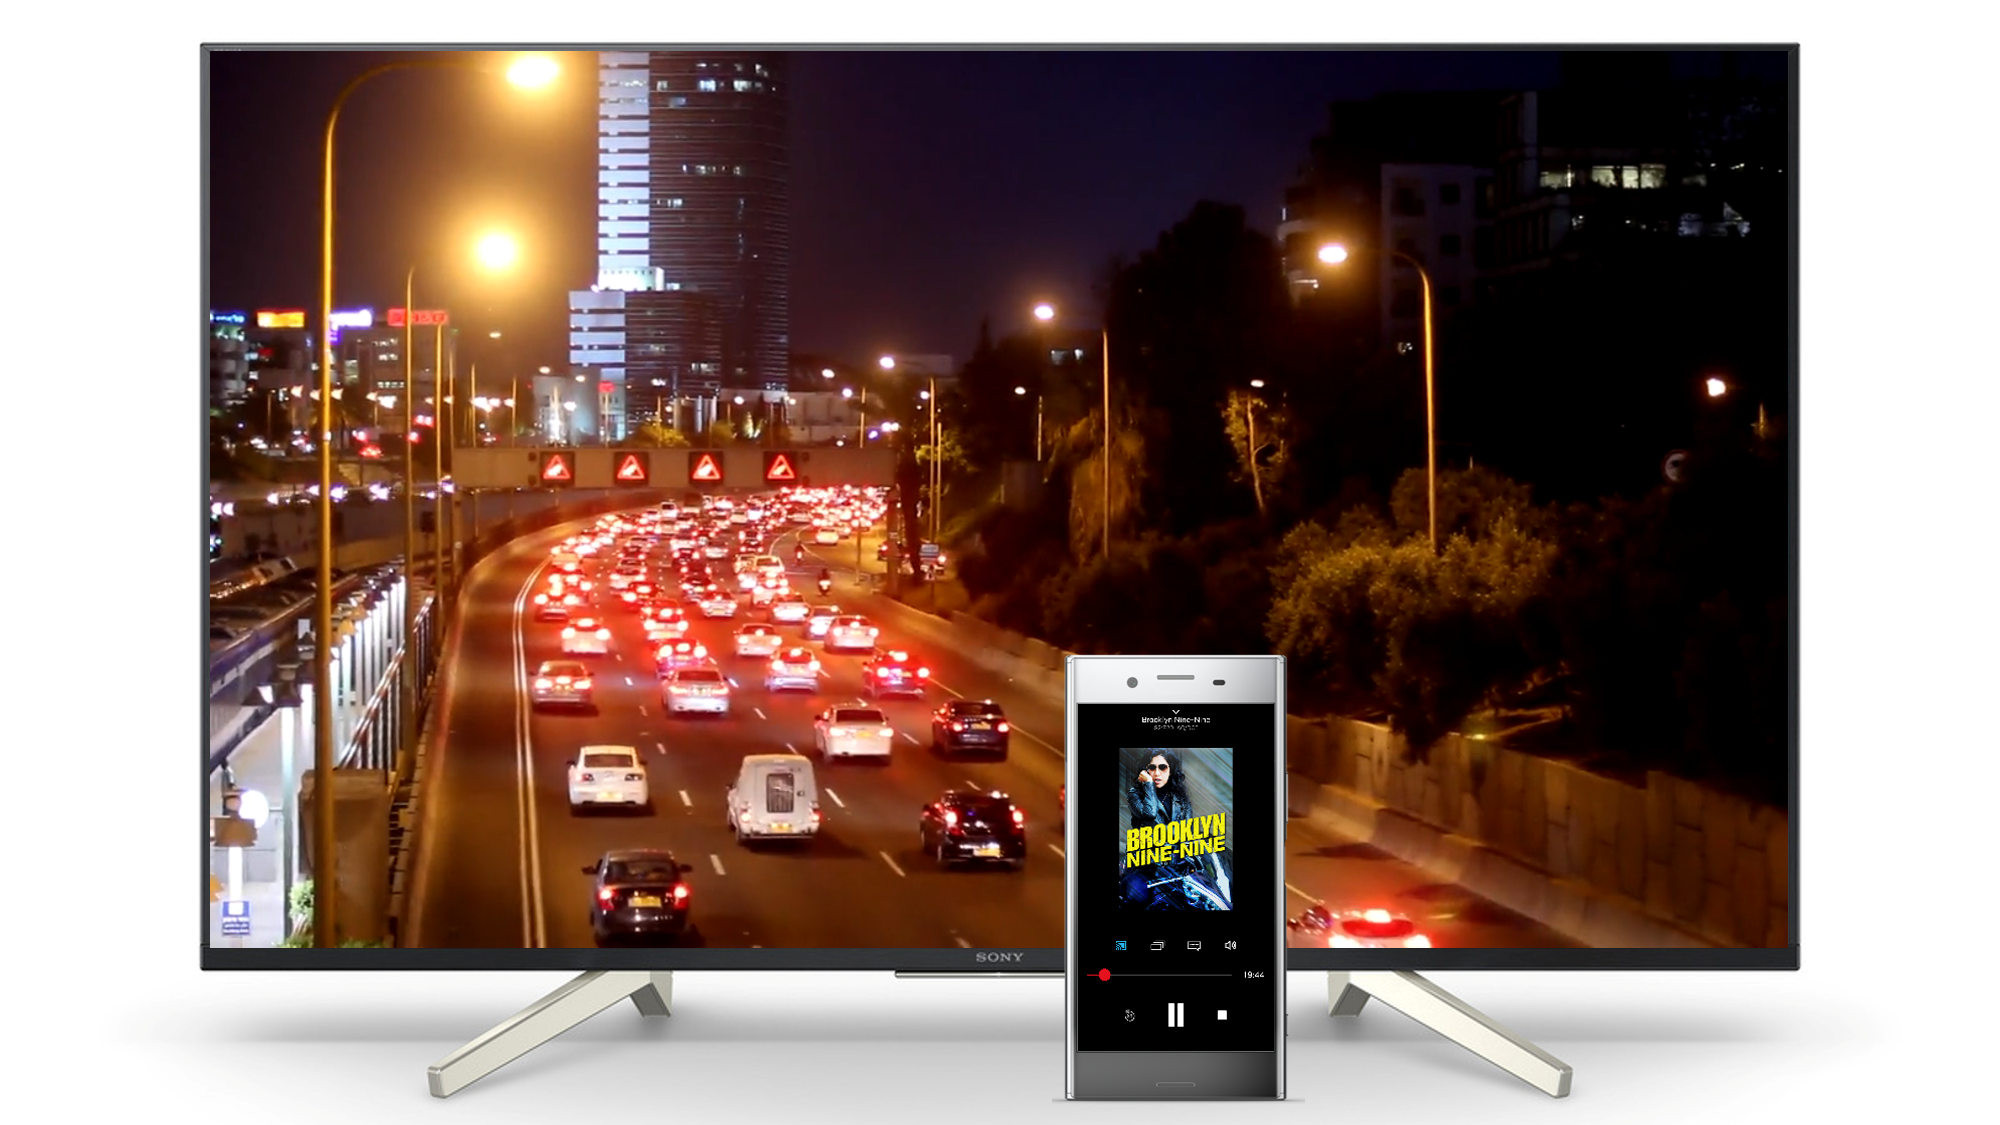 Sony Extends Exterity Partnership with Built-in Chromecast Support